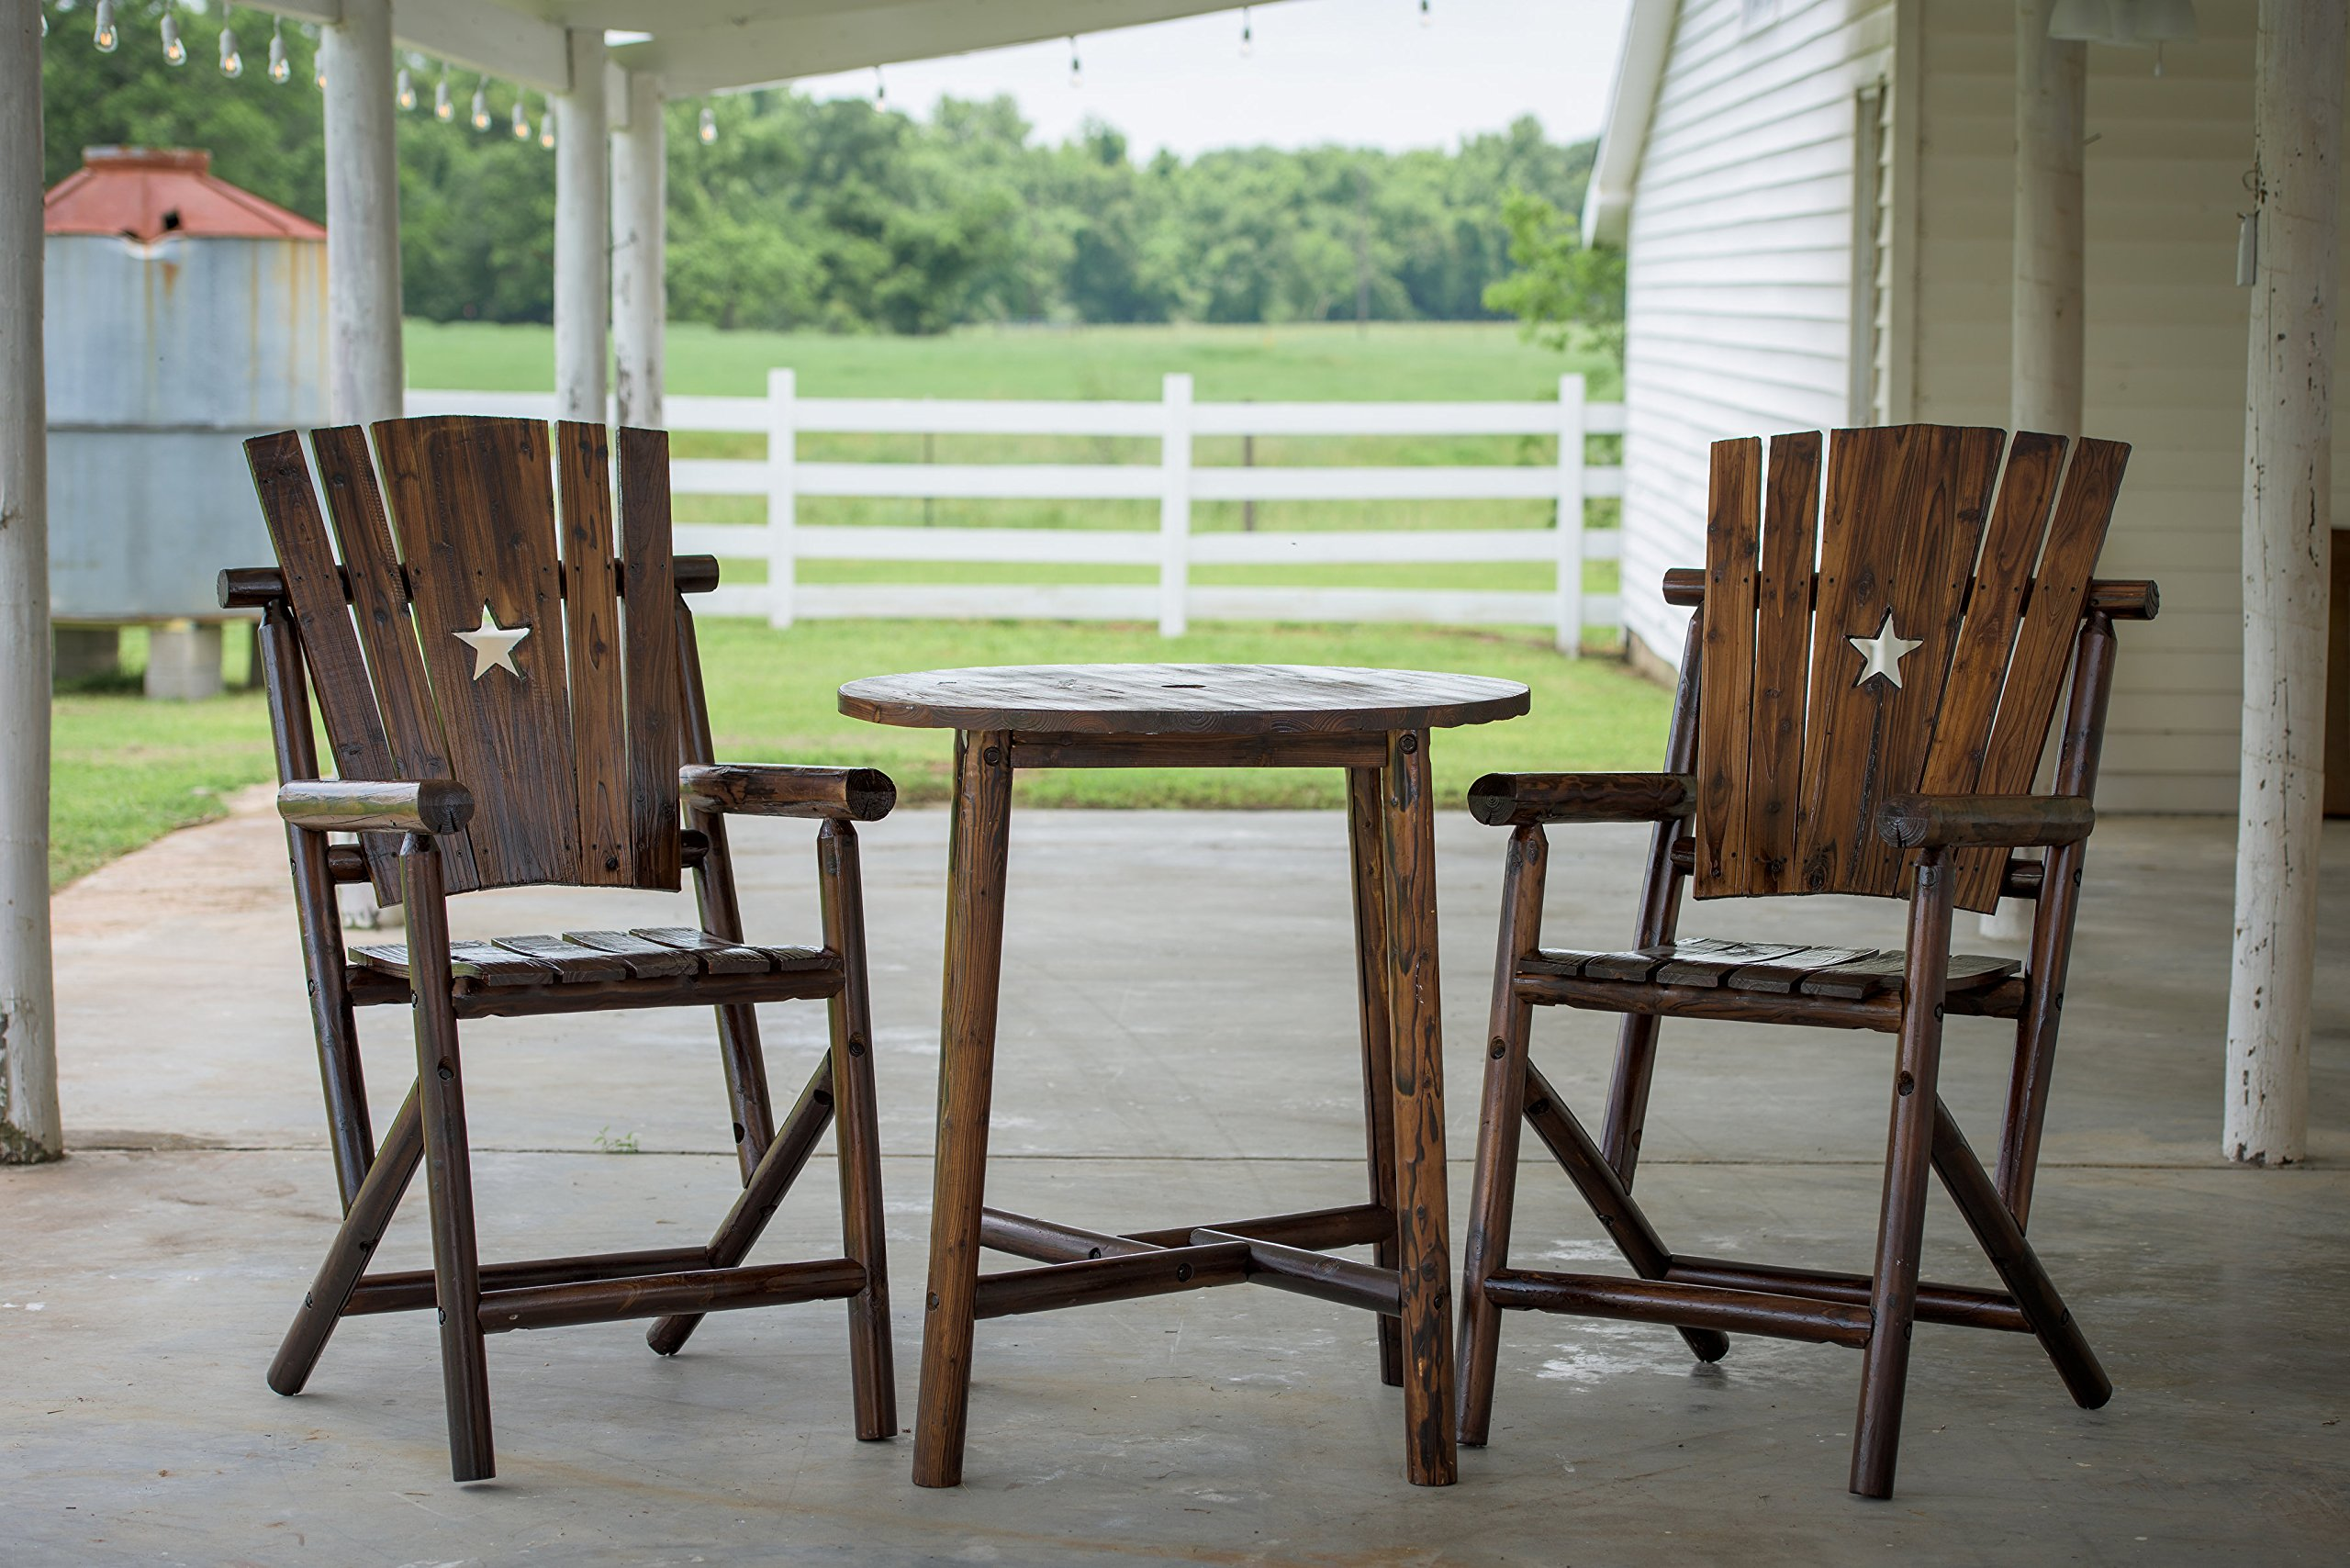 Leigh Country Bar Arm Chair with Star - Char-log finish is not a stain but a process that enhances the features of the log and preserves the wood to give the charred look Sealed with clear Lacquer Some assembly required - patio-furniture, patio-chairs, patio - 91KL1QDlsxL -